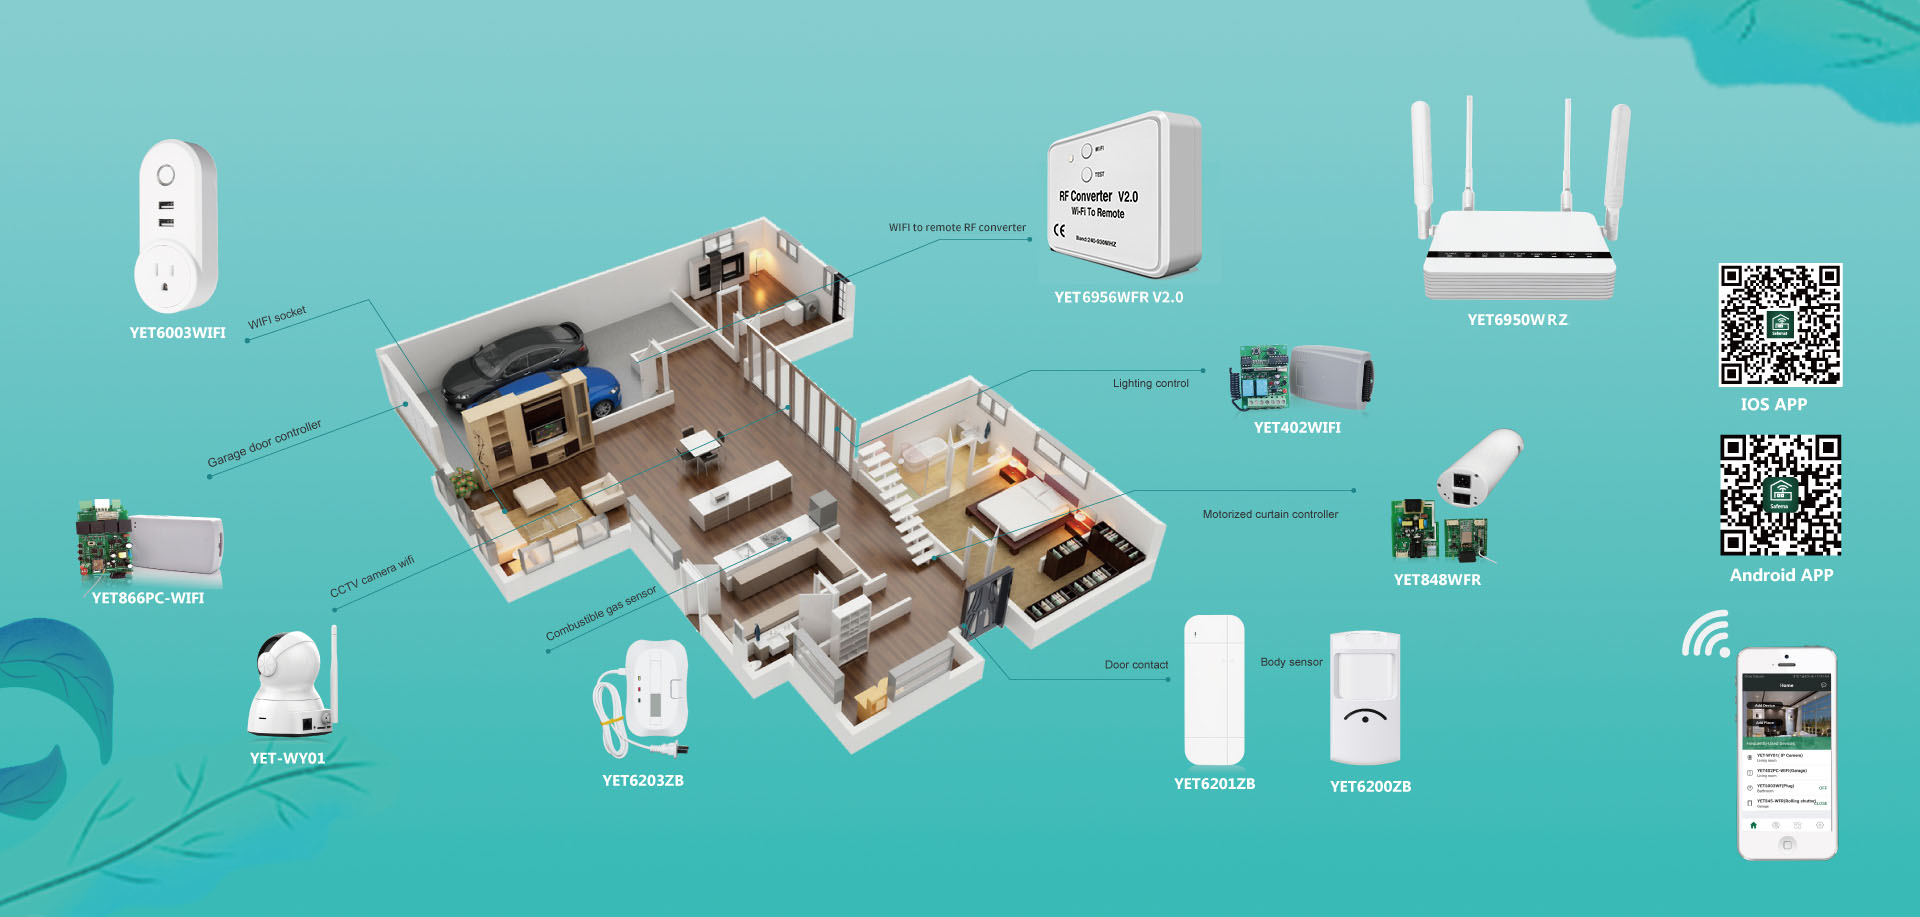 Analysis on the Advantages and Trends of China's Smart Home Development in 2019